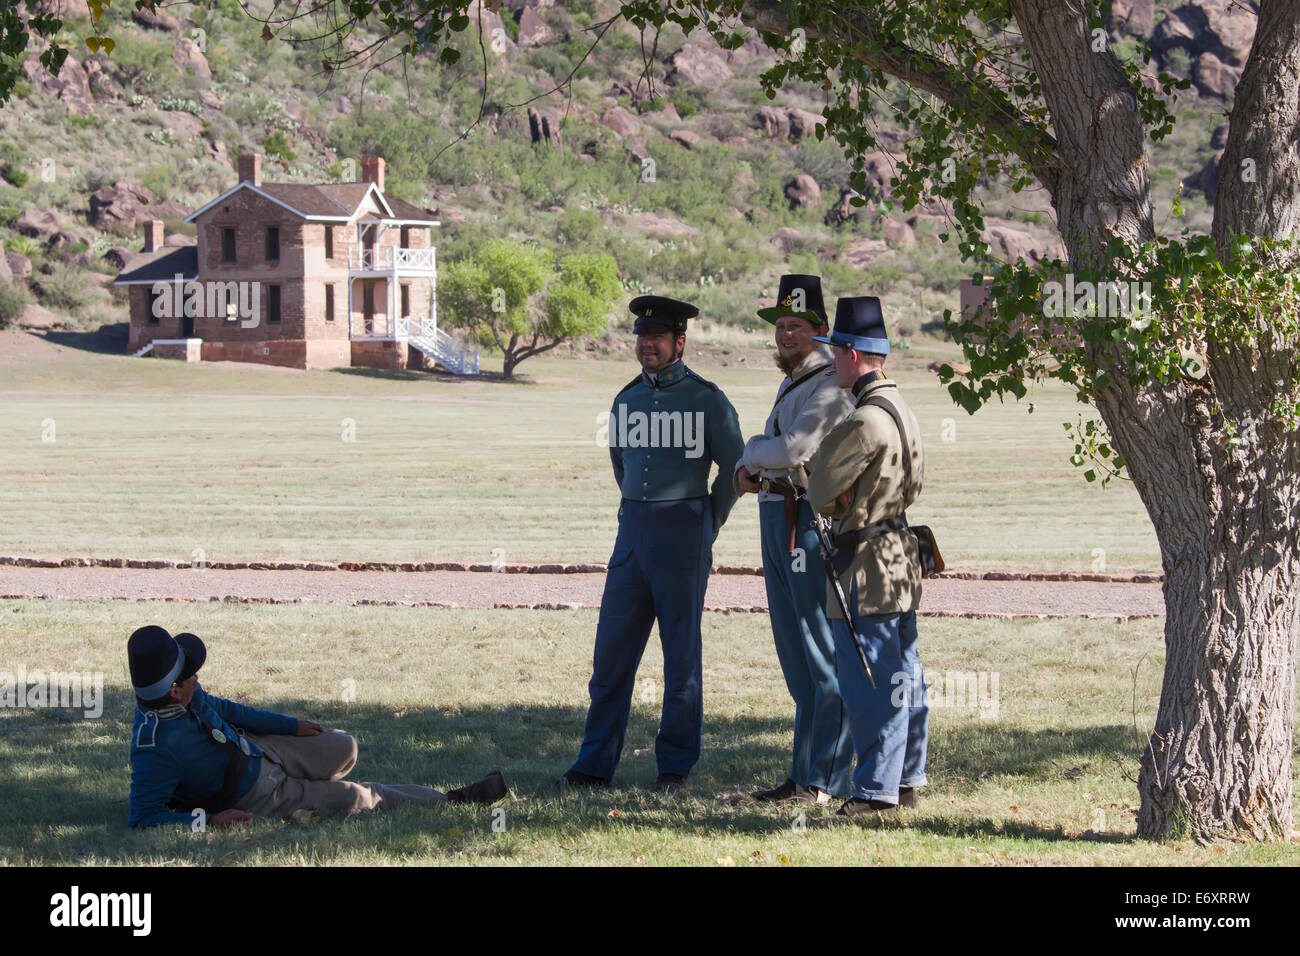 Old Fort Day annual event in Fort Davis Historical Site, Texas. The military post hosted the Buffalo Soldiers. Stock Photo